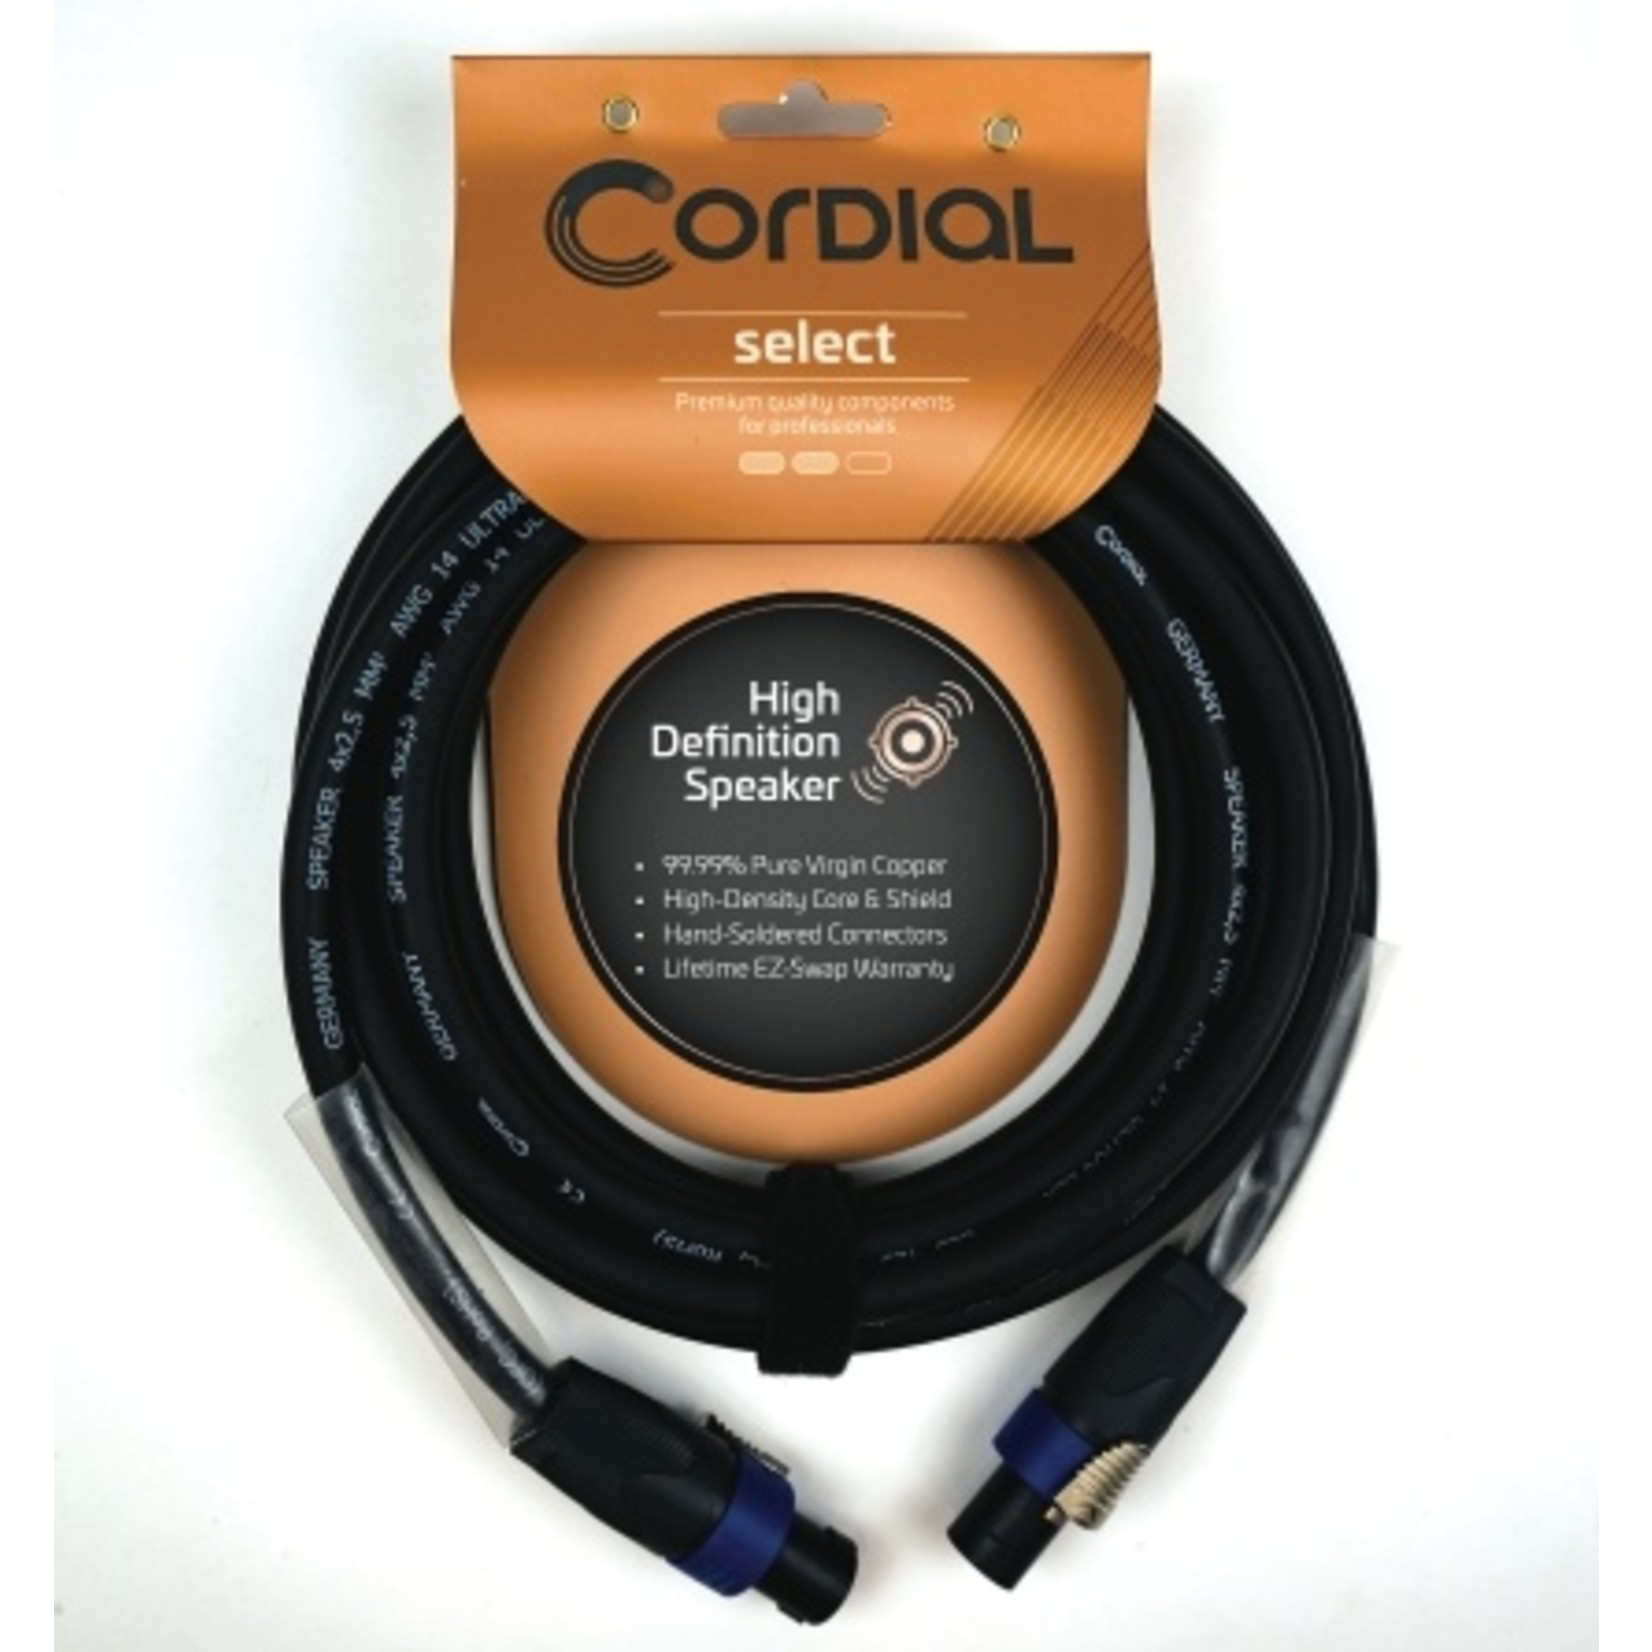 Cordial Cables Cordial Cables Premium Speaker Cable with speakON to speakON Connectors, Select Series - Premium 4-Pole, 2.5mm² Gage Selecter, 33-Foot Cable